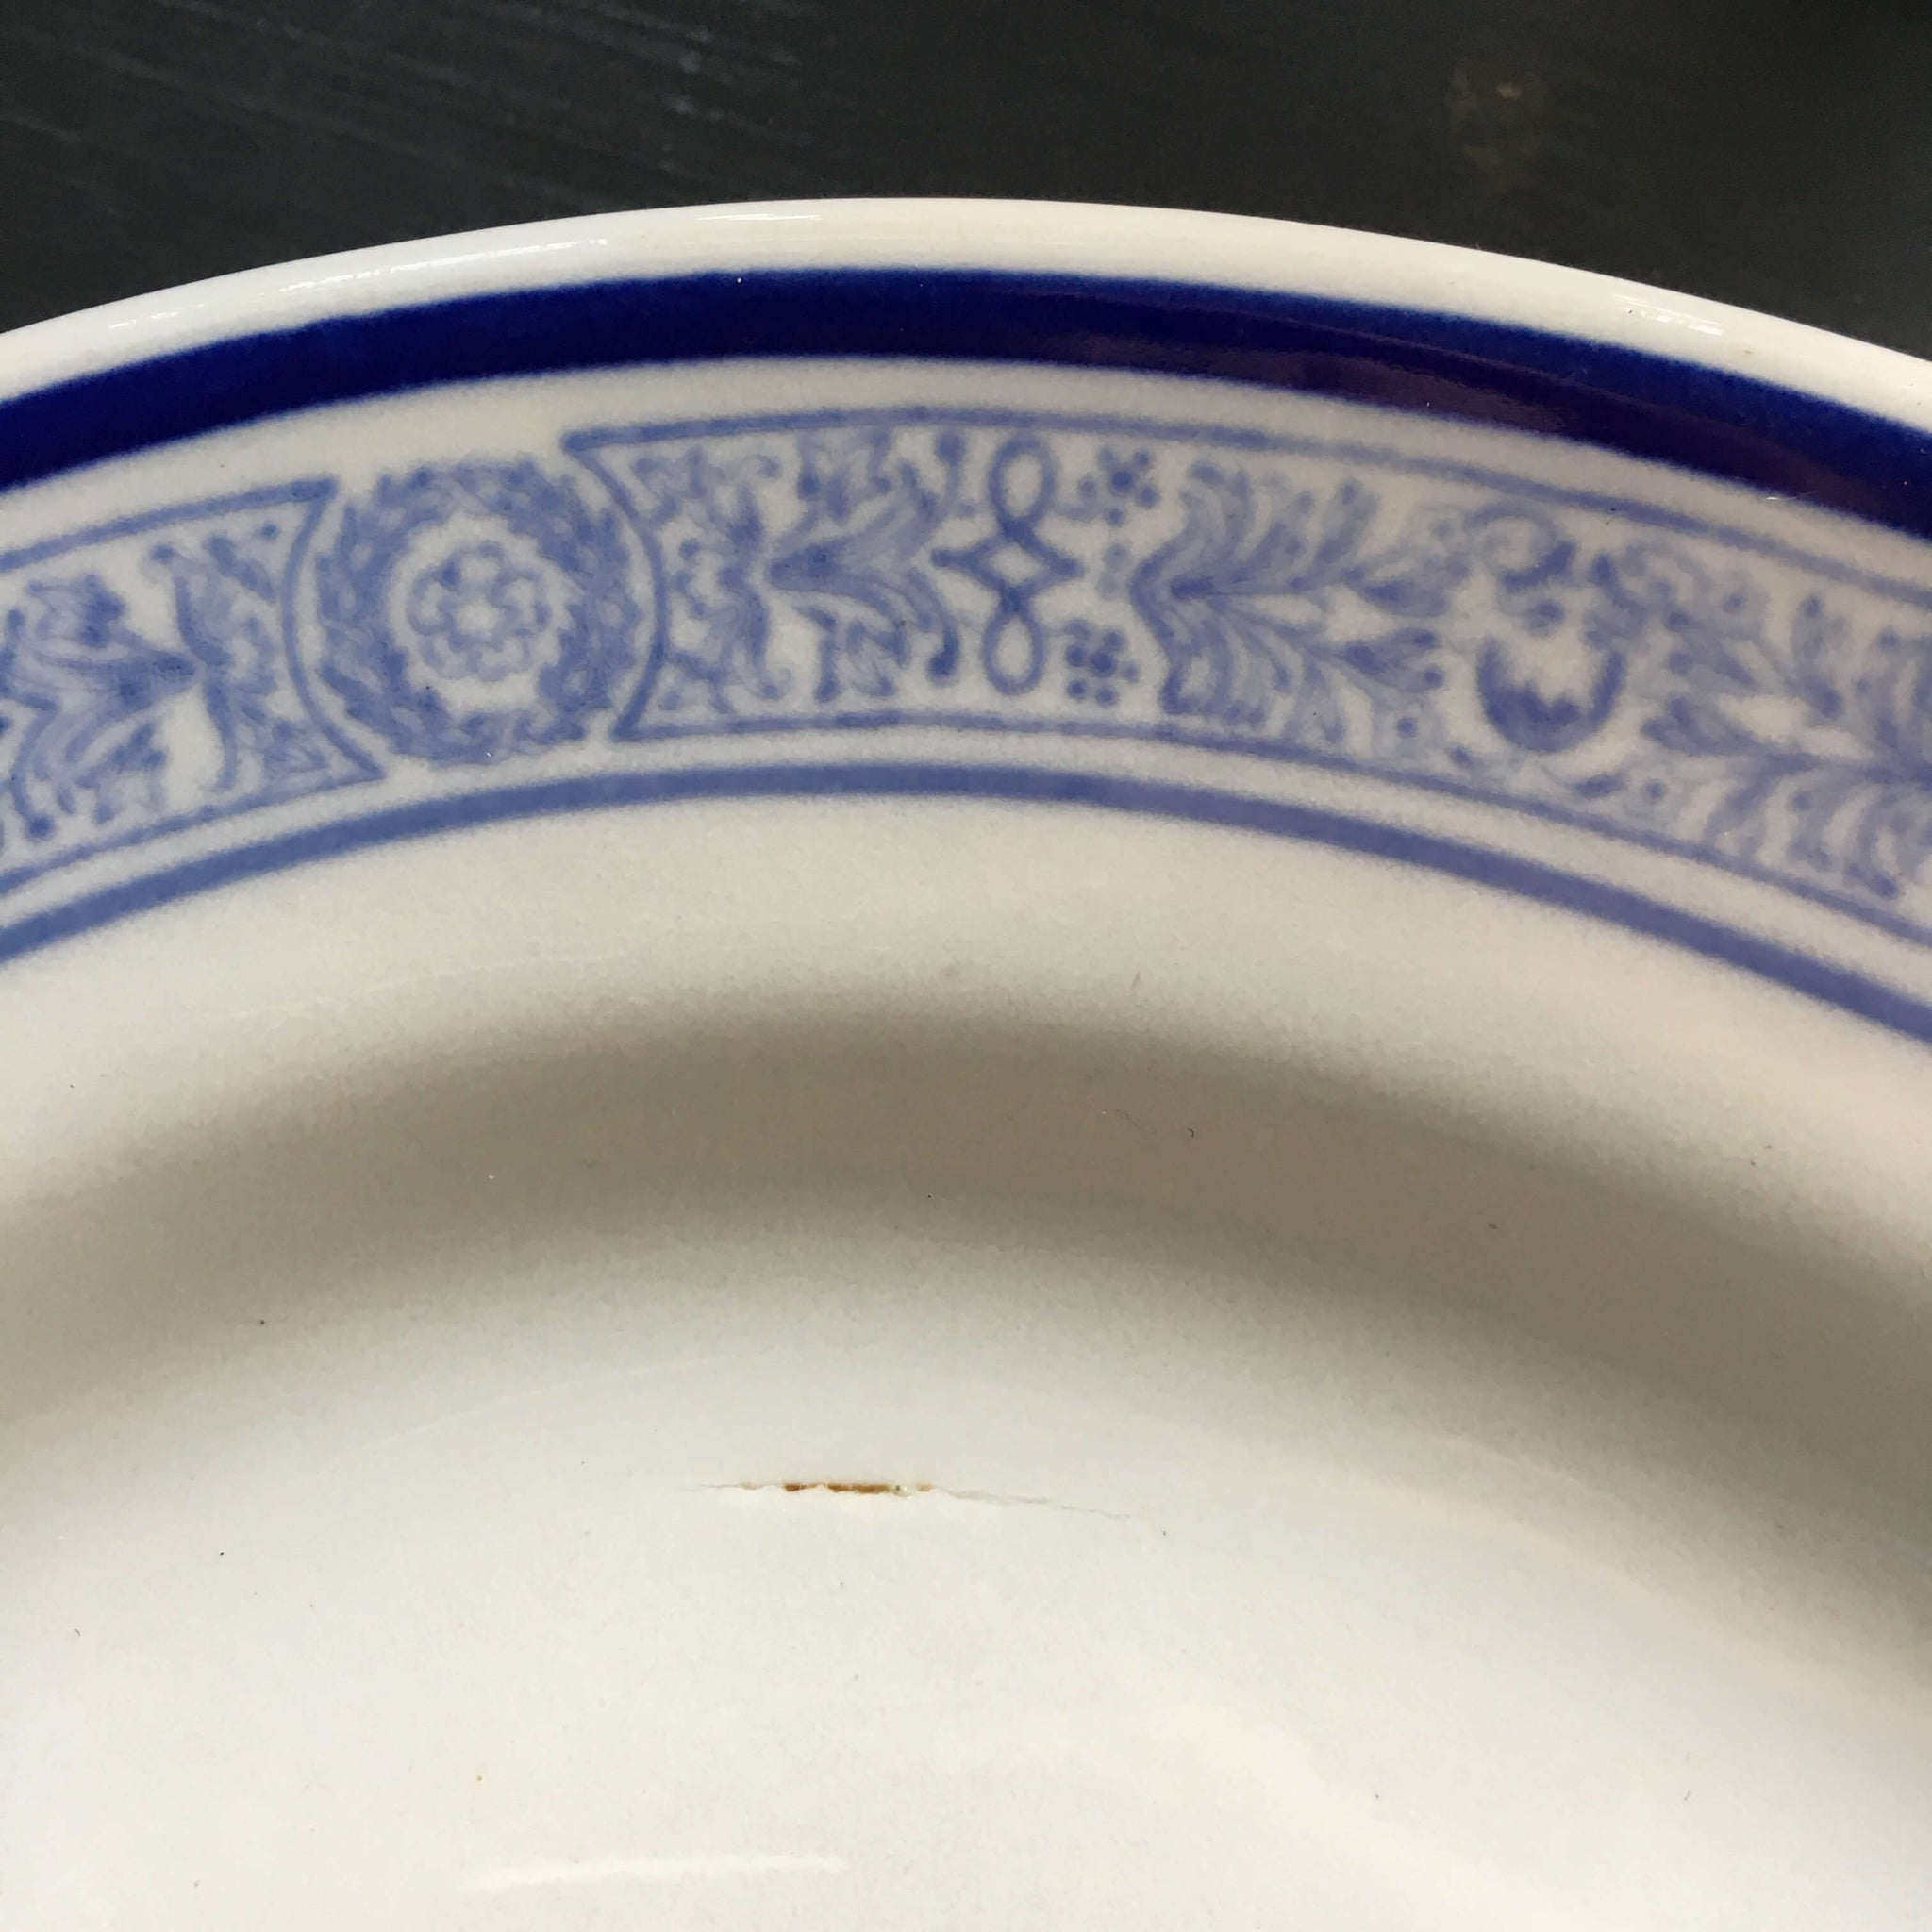 Vintage Blue and White Restaurantware Platter - Mayer China Aurora Pattern circa 1912-1930s